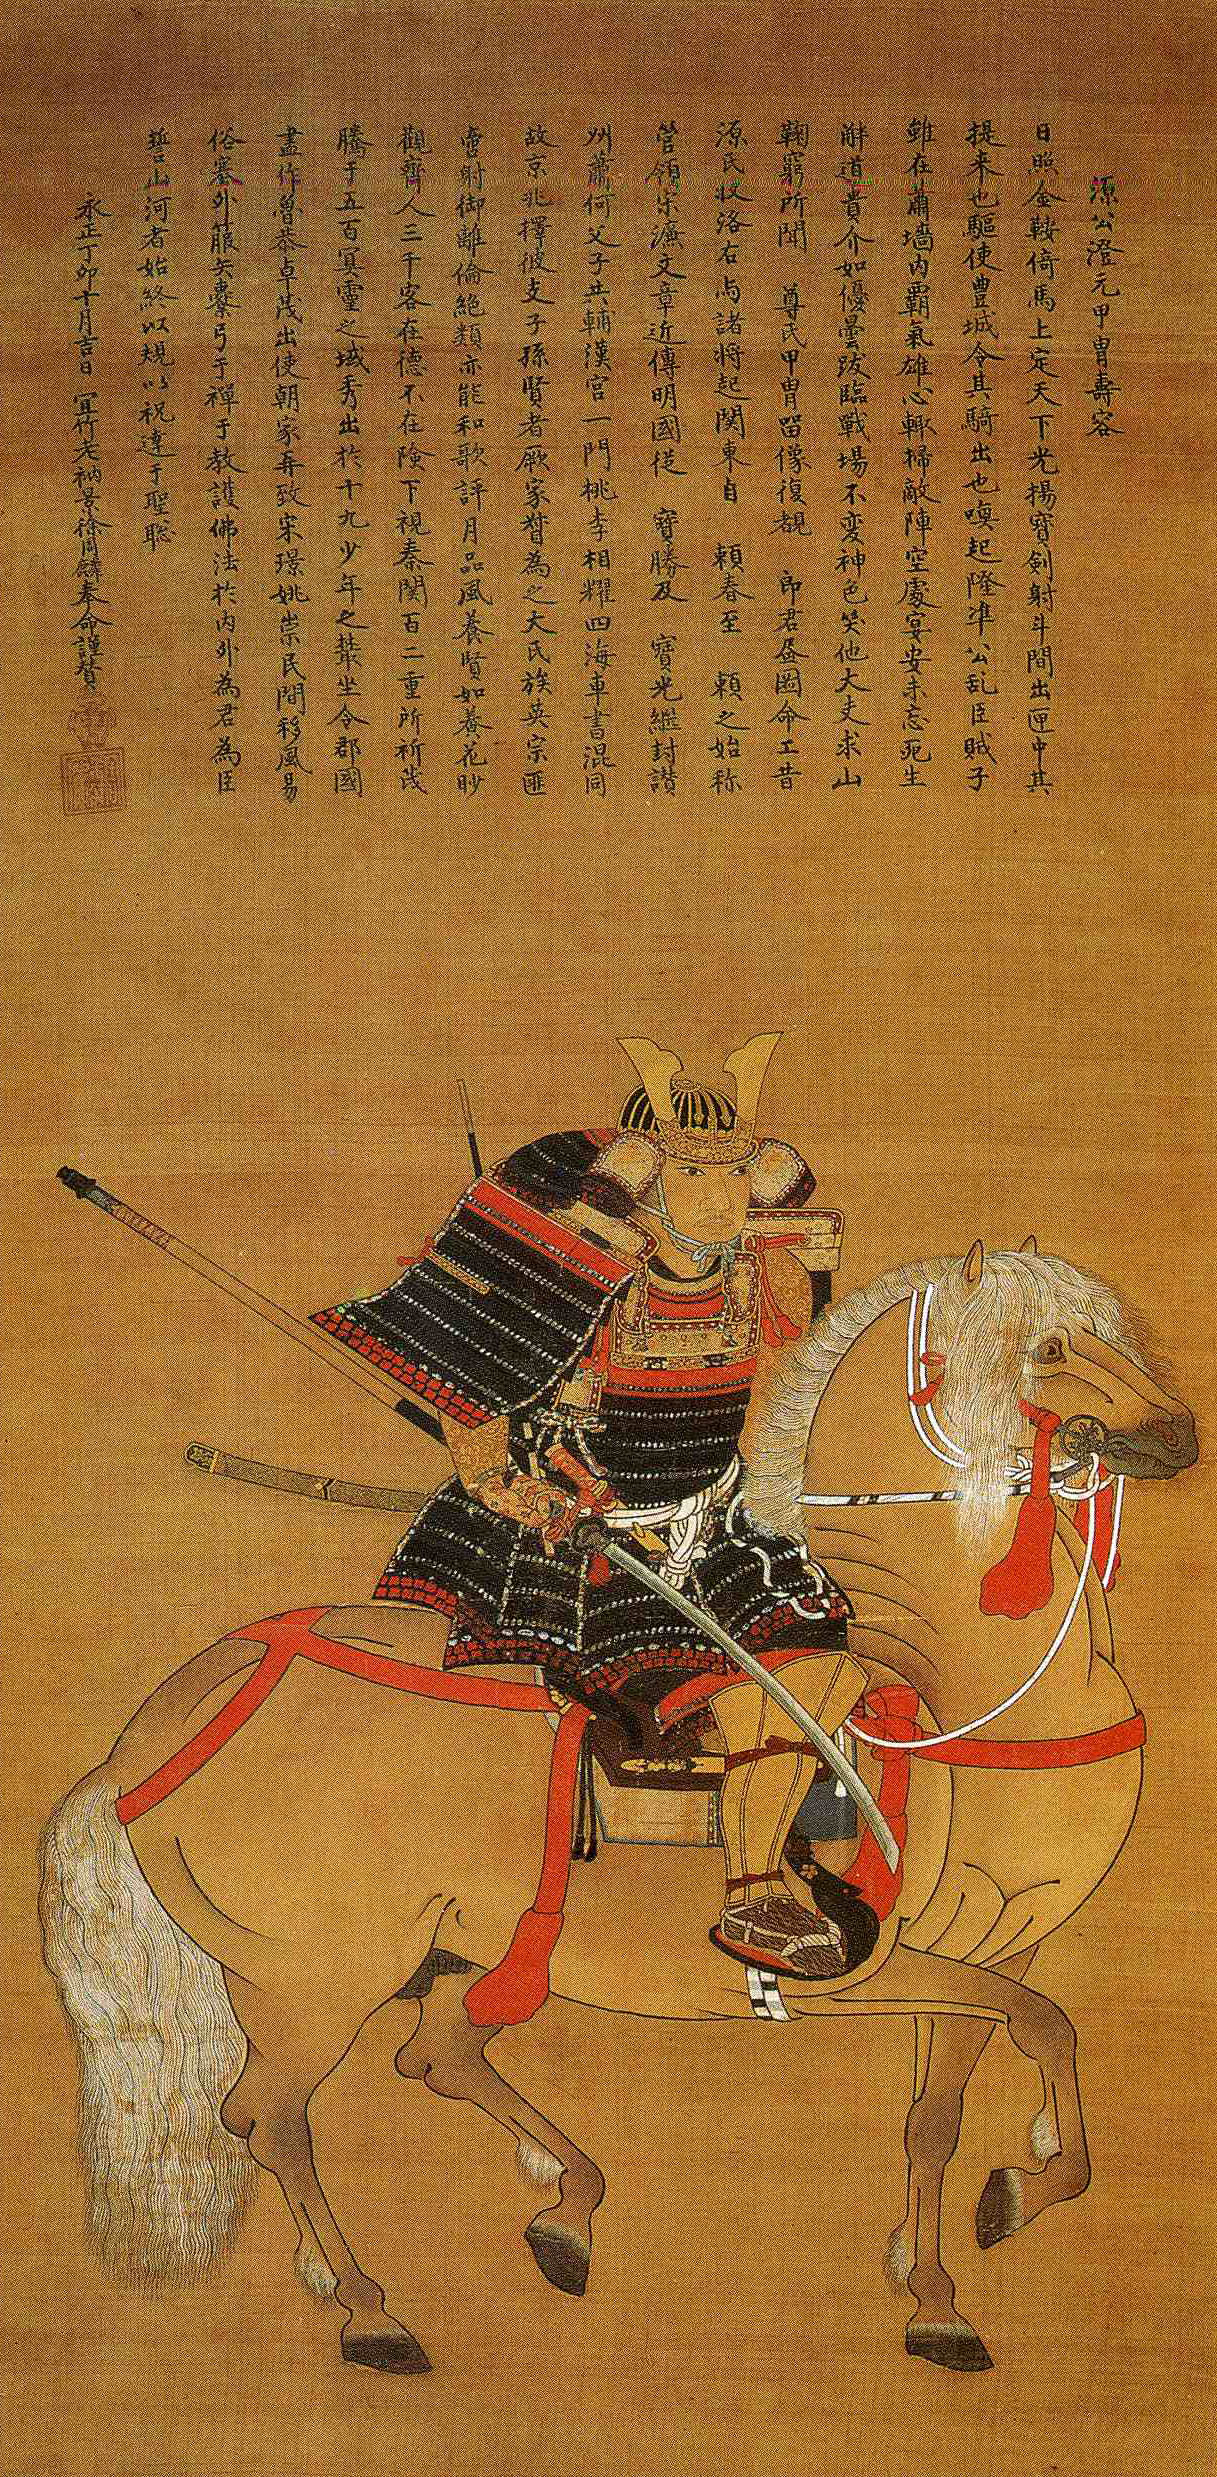 A picture of Sumimoto Hosokawa on horseback (細川澄元像) by Kanō Motonobu